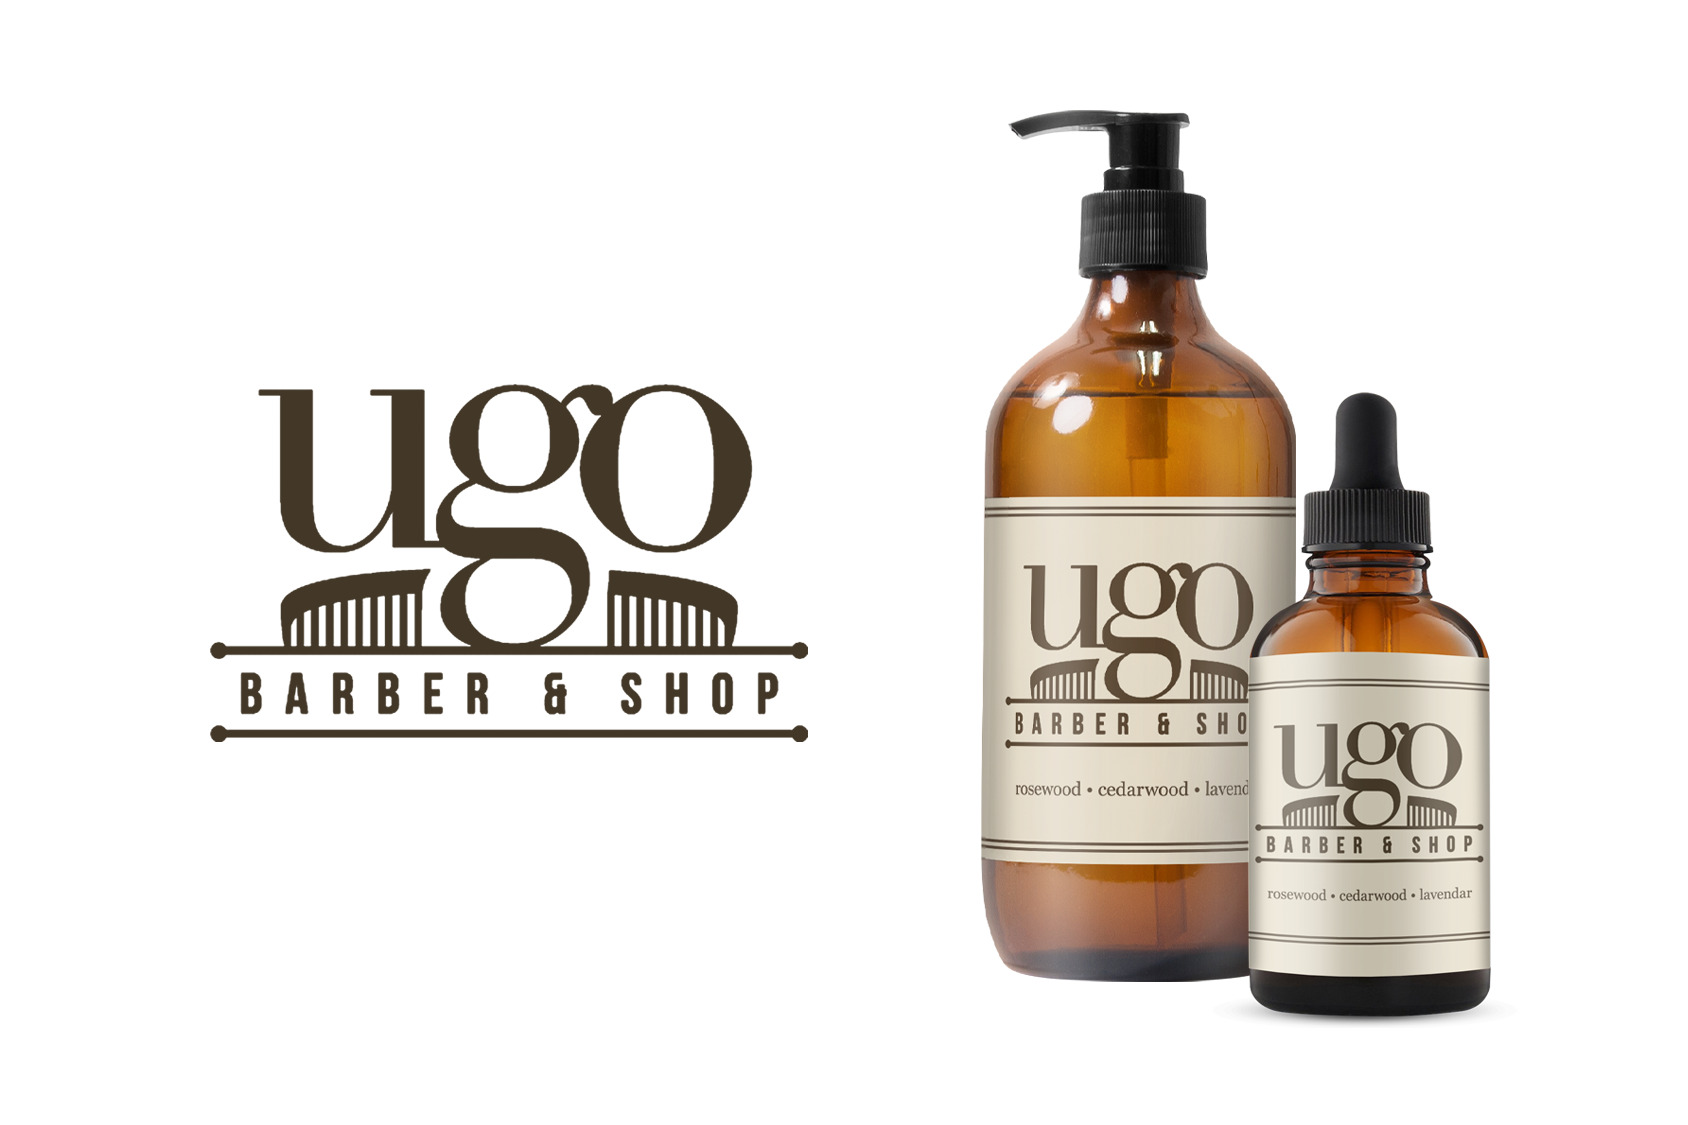 Logo and Product Label Design